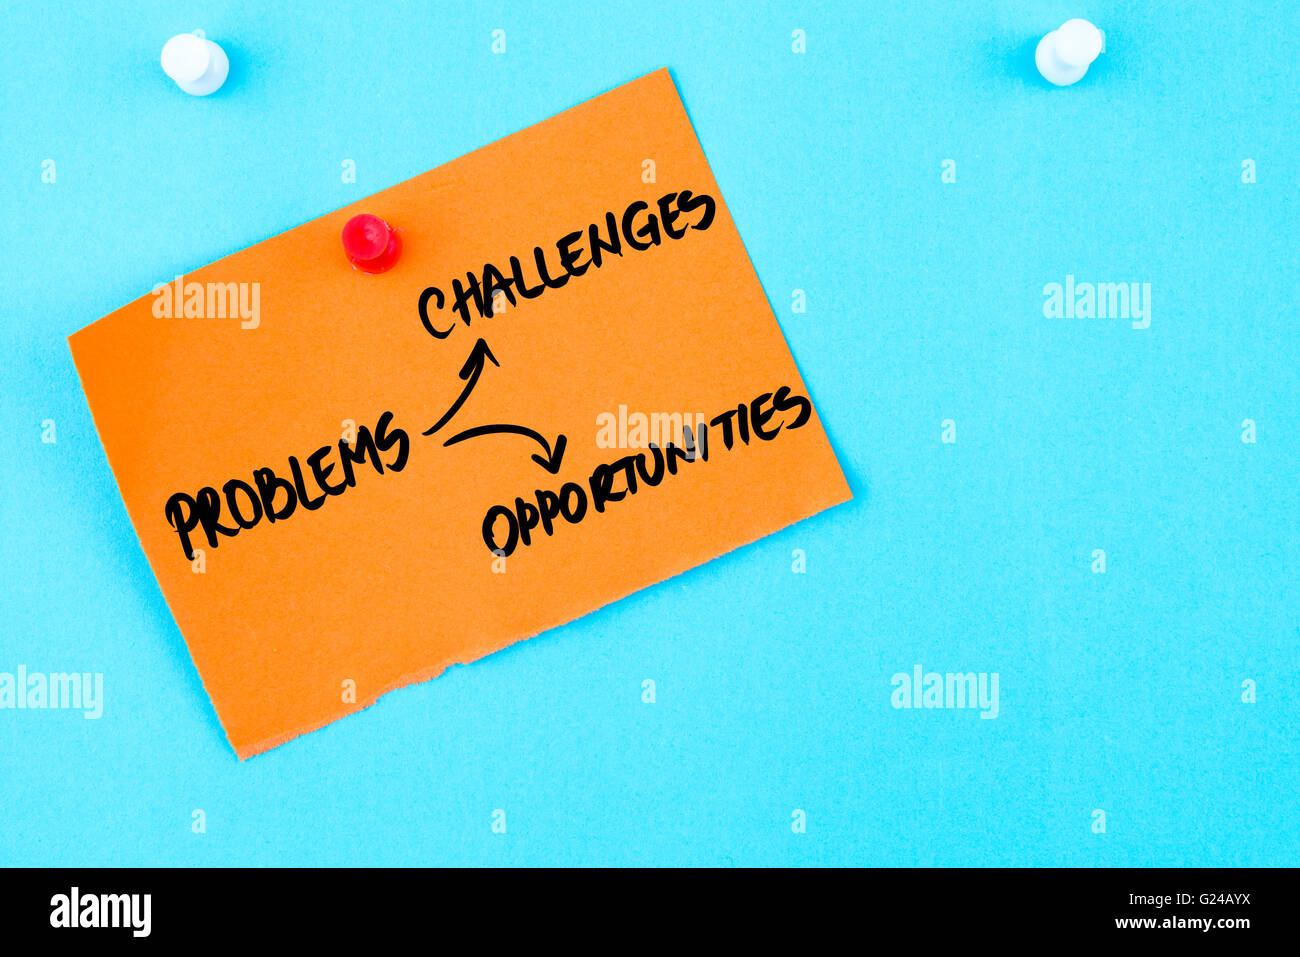 challenges and opportunities Global education has been a focus in american higher education for several years recently, we have seen an increase in conferences, speeches, and papers encouraging.